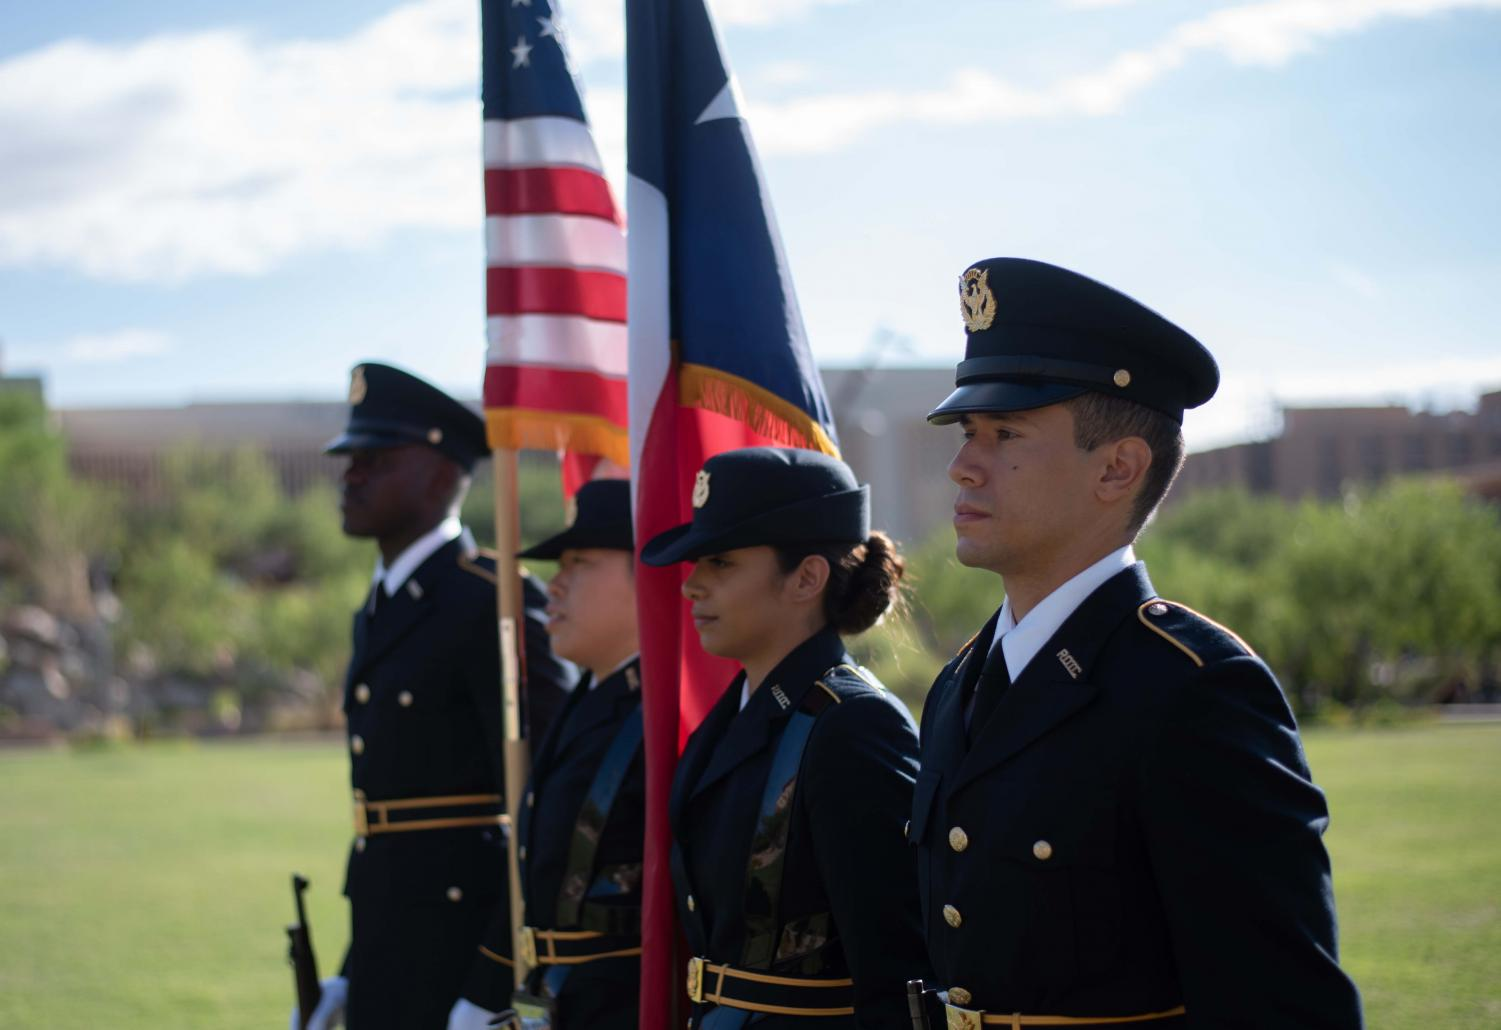 The UTEP ROTC Color guard gets ready to present the nations colors at the annual 9/11 commemoration ceremony in Centennial Plaza.